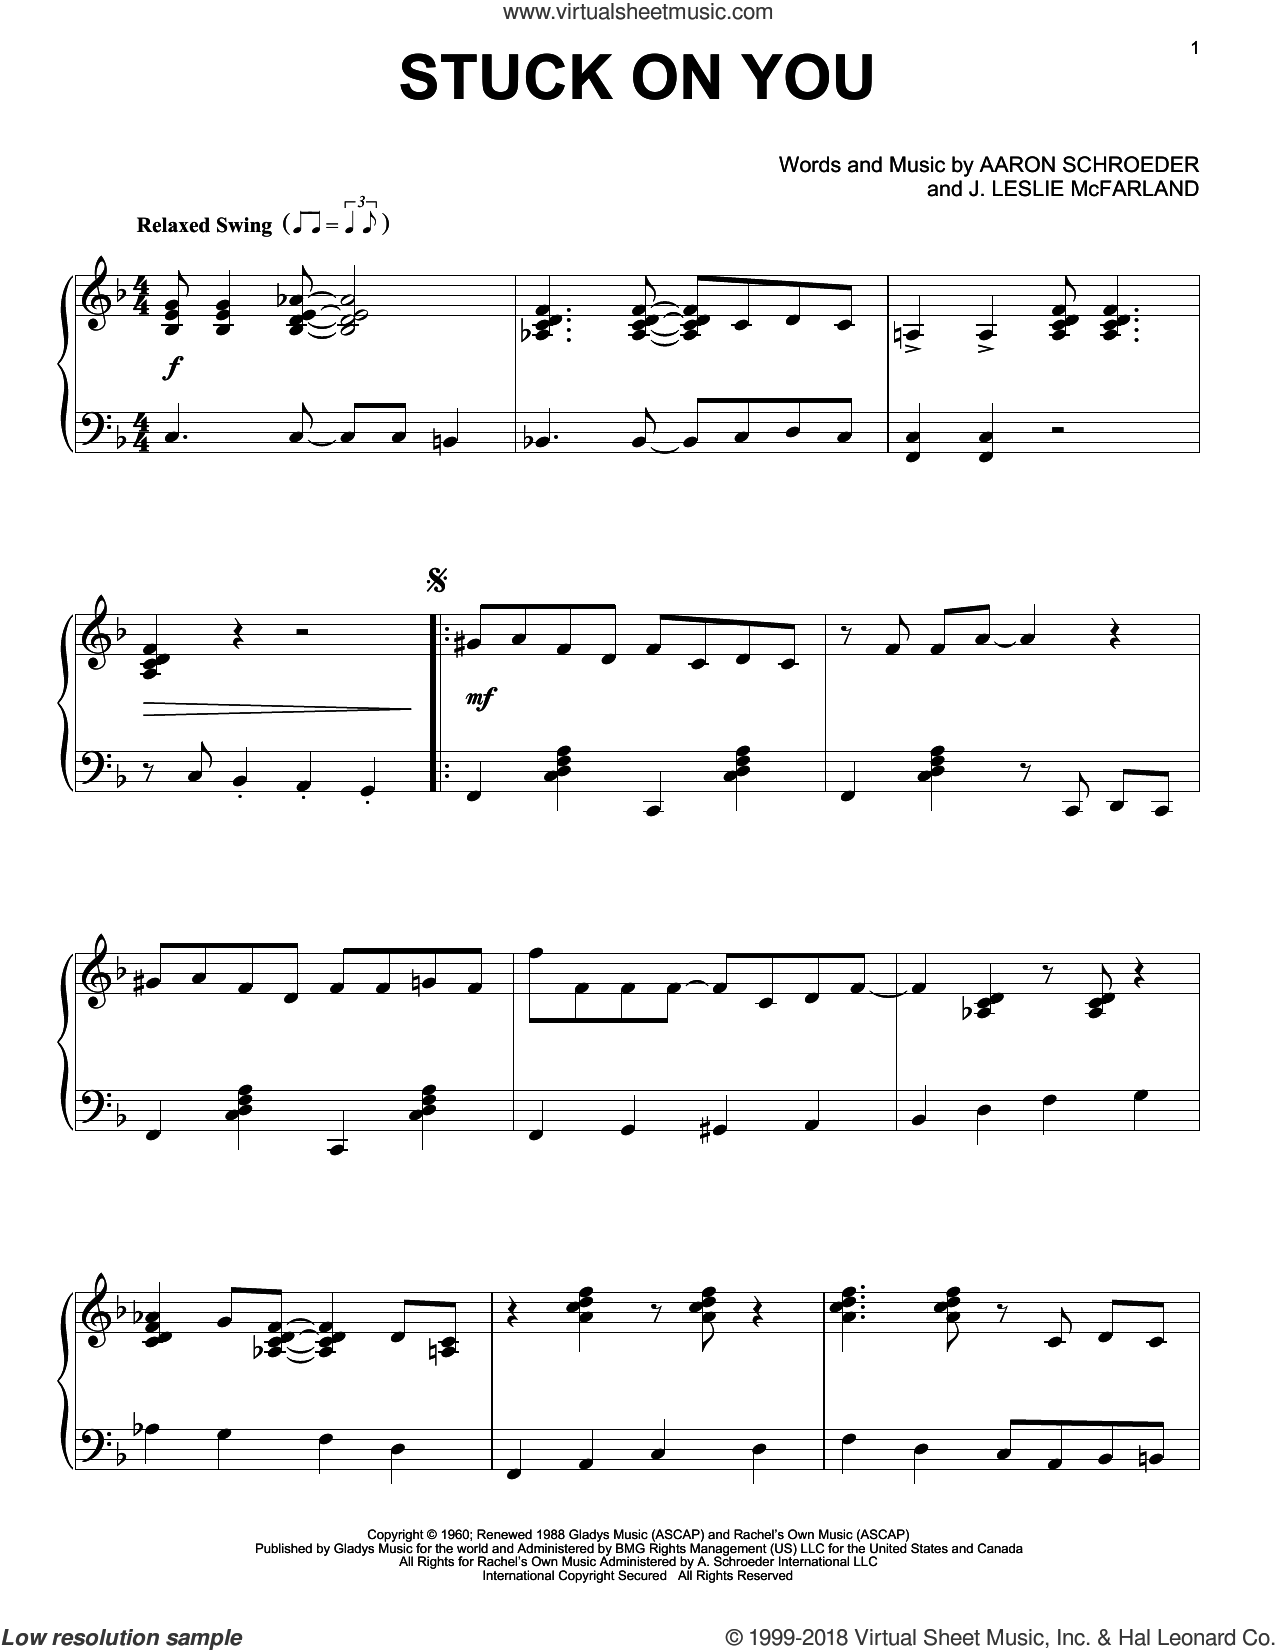 Stuck On You sheet music for piano solo by Elvis Presley, Aaron Schroeder and J. Leslie McFarland, intermediate skill level